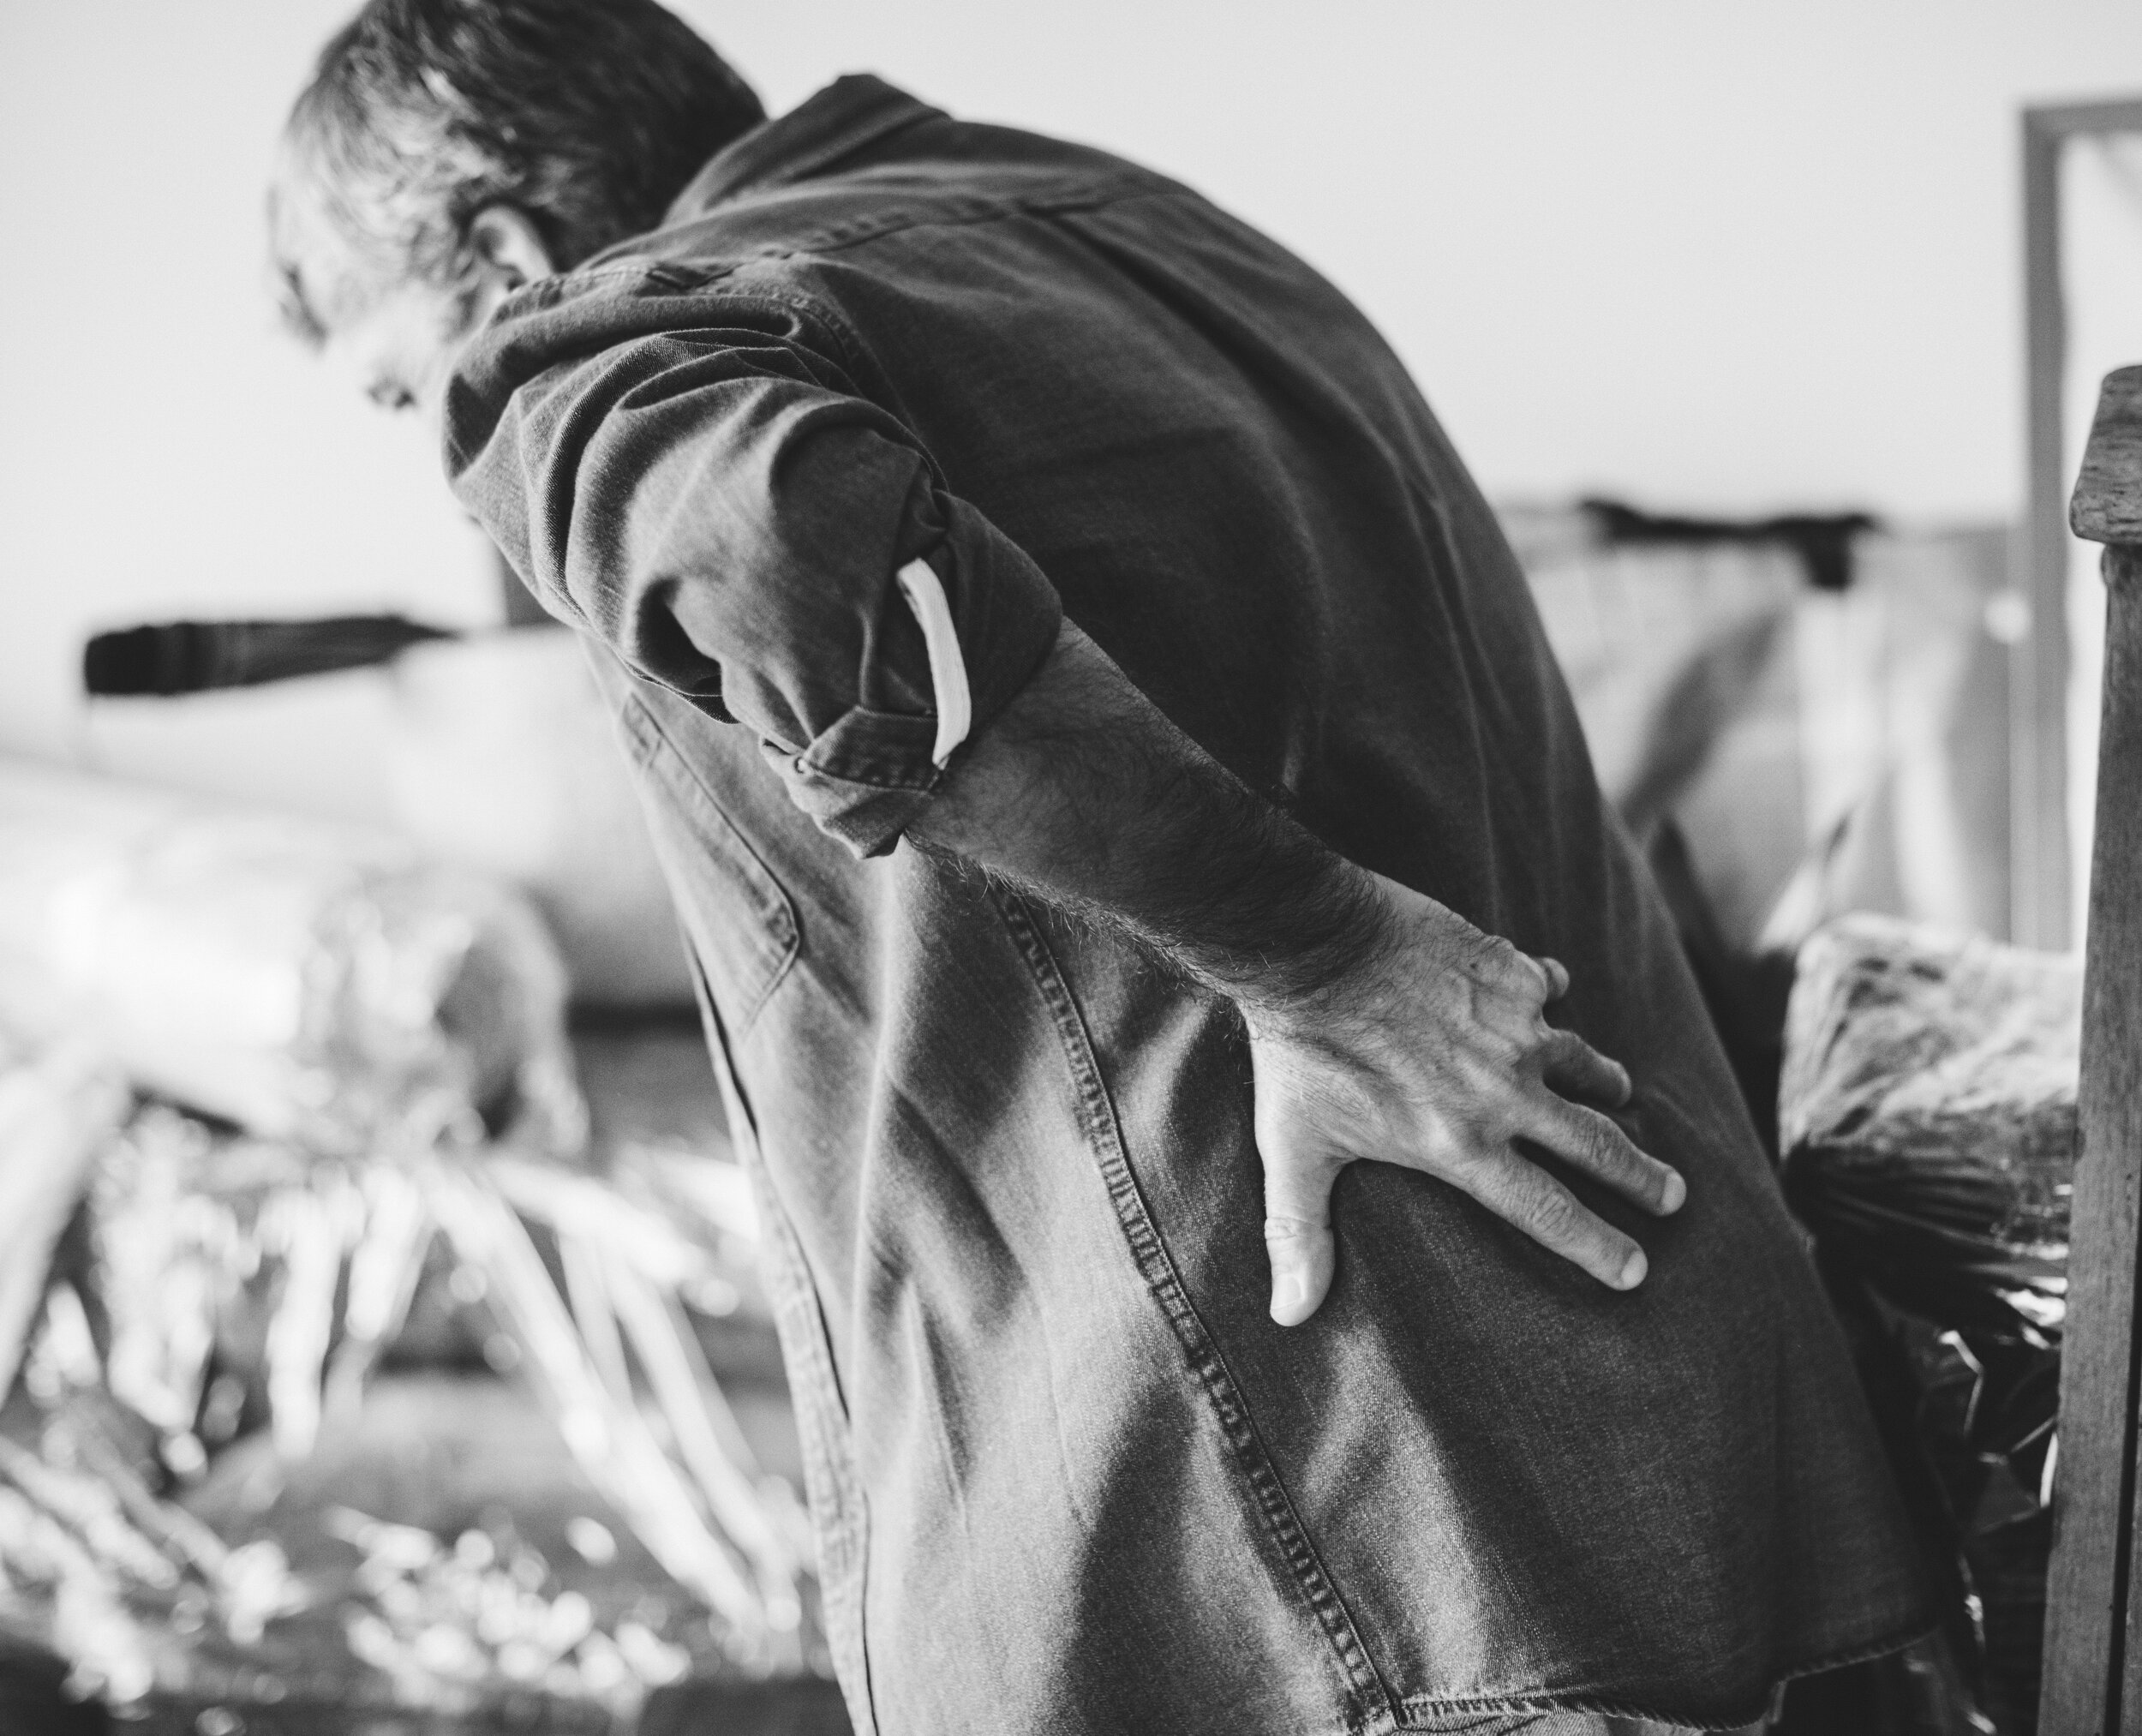 Massage therapy can be highly effective in treating injuries related to worker's compensation claims